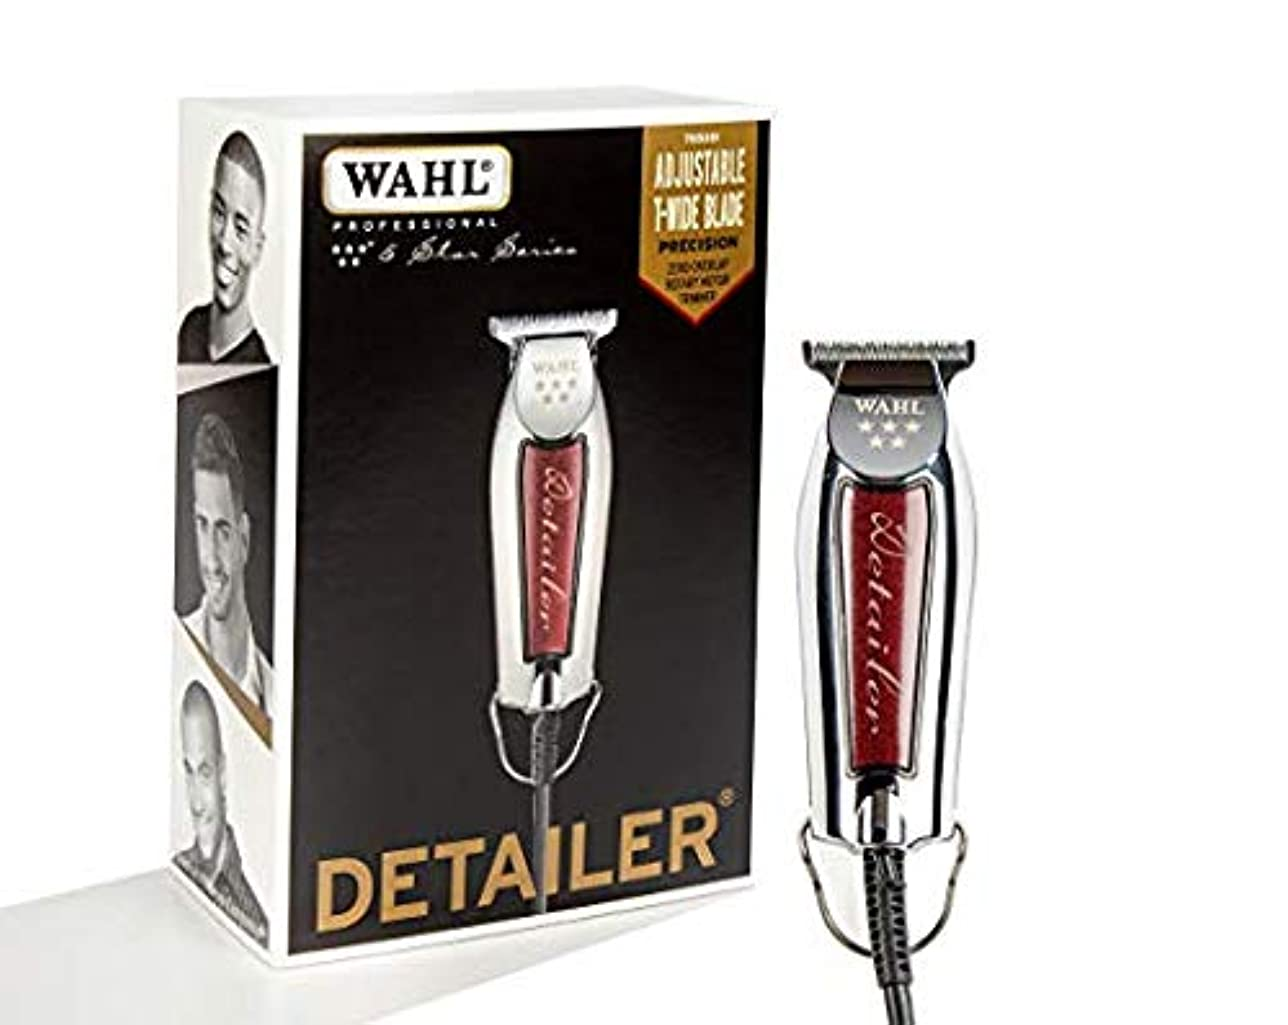 数理論的切る[Wahl ] [Professional Series Detailer #8081 - With Adjustable T-Blade, 3 Trimming Guides (1/16 inch - 1/4 inch), Red Blade Guard, Oil, Cleaning Brush and Operating Instructions, 5-Inch ] (並行輸入品)